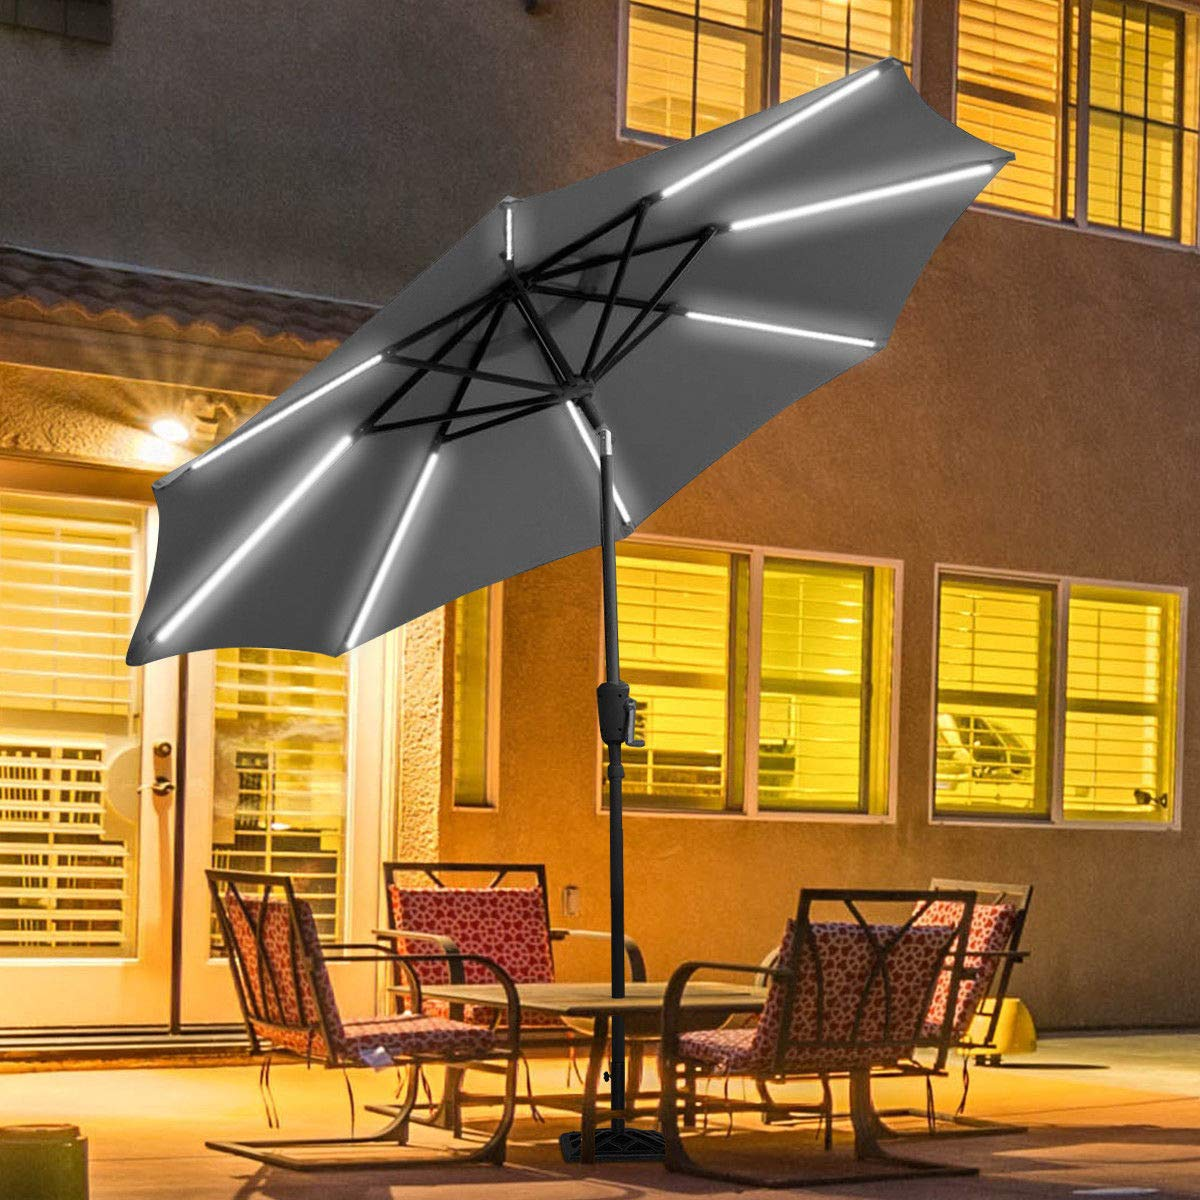 TANGKULA 9ft Patio Umbrella Outdoor Tilt Umbrella Lawn Garden Balcony Sunshade Tent Rain Shelter Patio Furniture Solar Led Light(Grey)